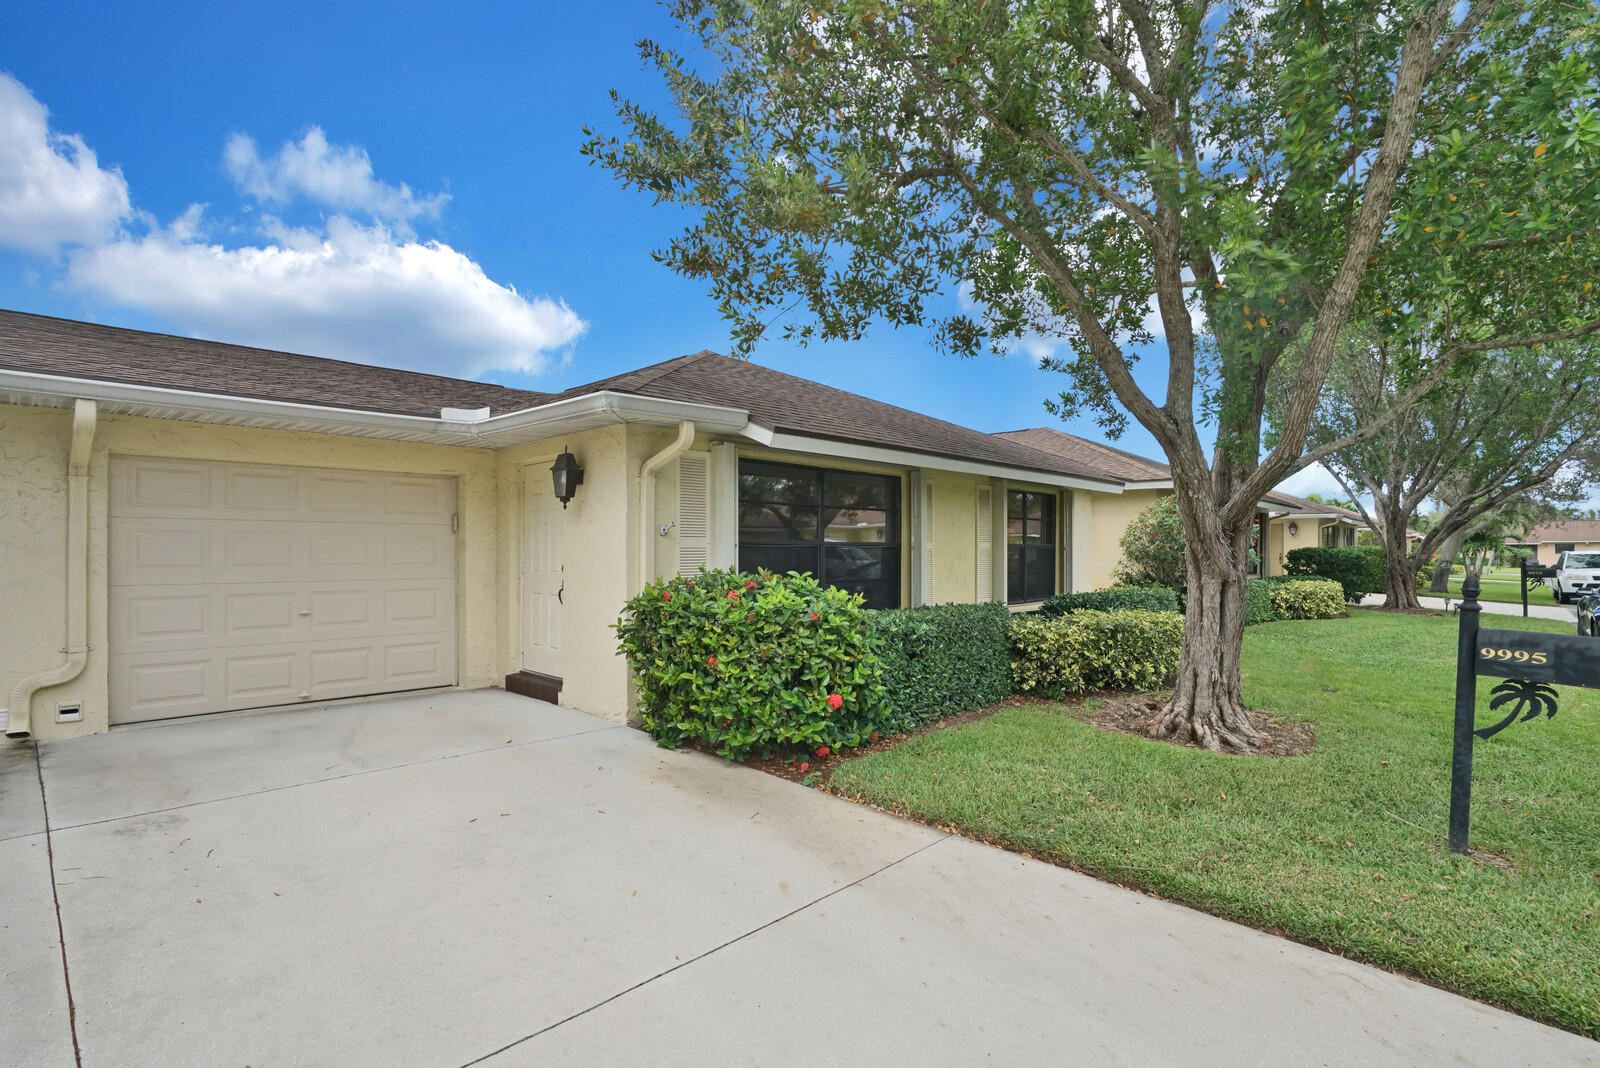 Photo of 9995 Ligustrum Tree Way #B, Boynton Beach, FL 33436 (MLS # RX-10674483)